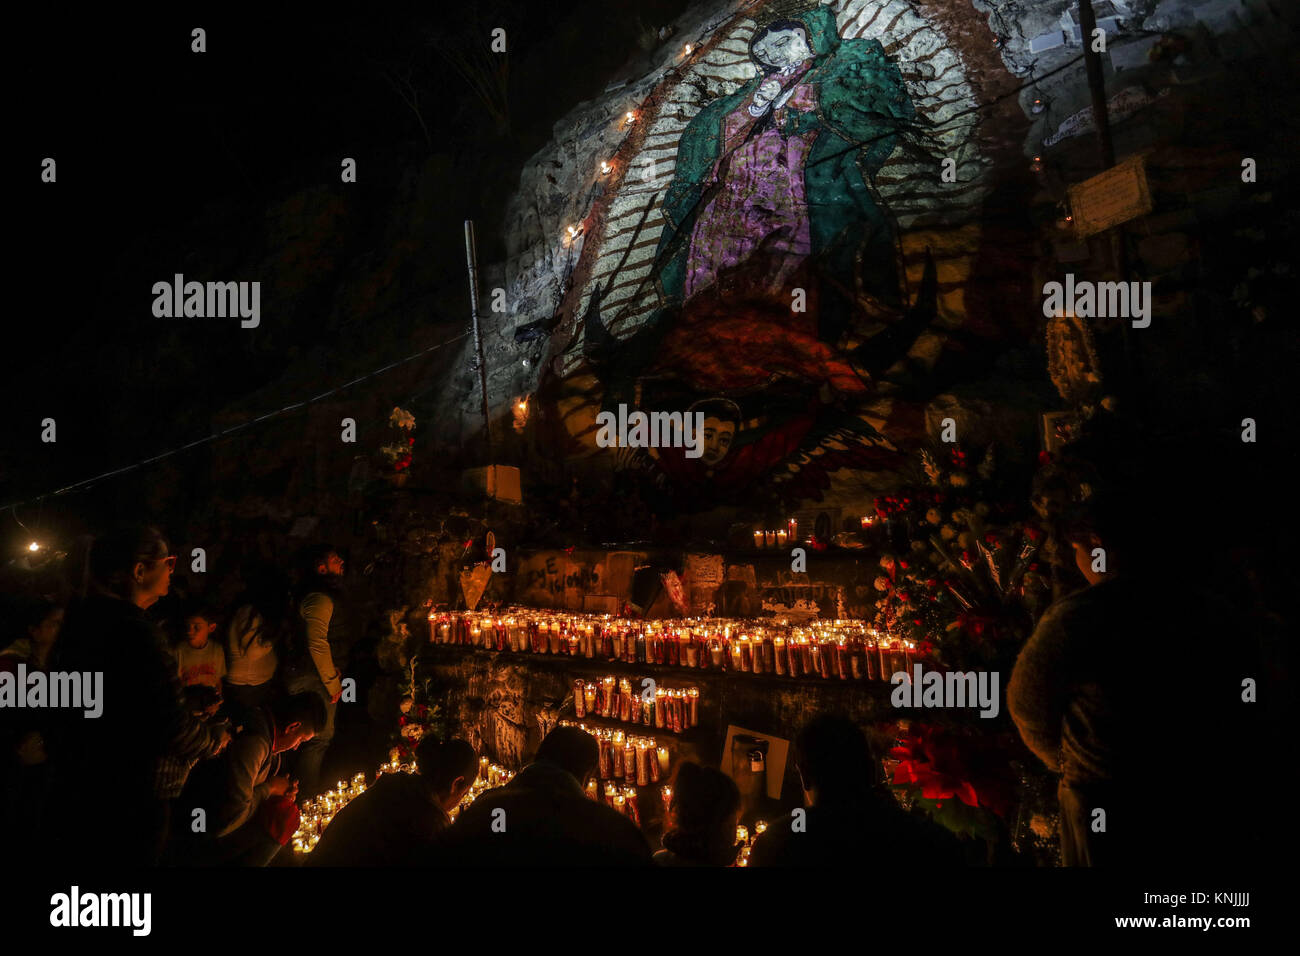 Pilgrimage in honor of the Virgin of Guadalupe or Virgin Mary, also called the Patroness of Mexico. According to Stock Photo